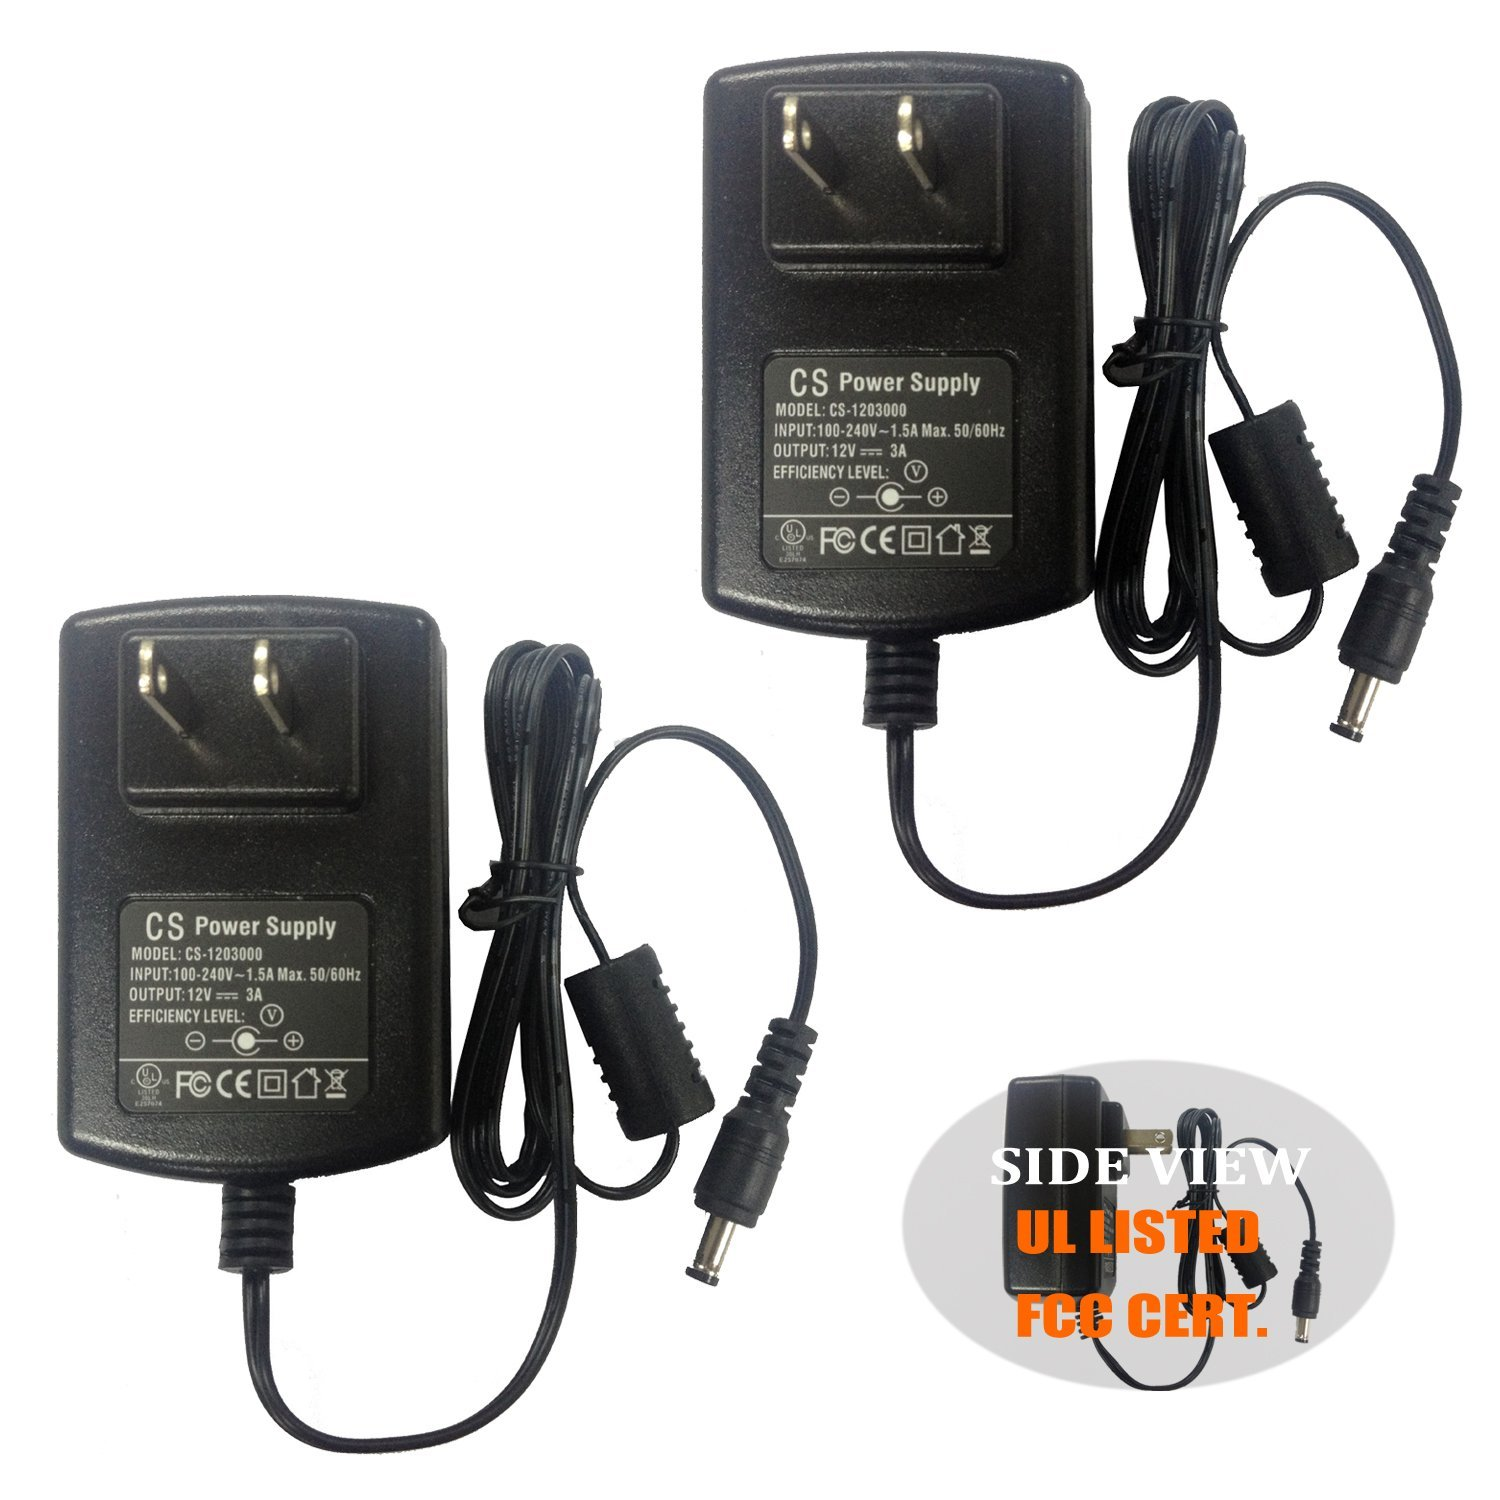 AC to DC 12V 1.5A 12V1.5A Power Supply Adapter Switching for Cameras DVR NVR LED Light Strip DC3.5*1.35mm UL listed FCC